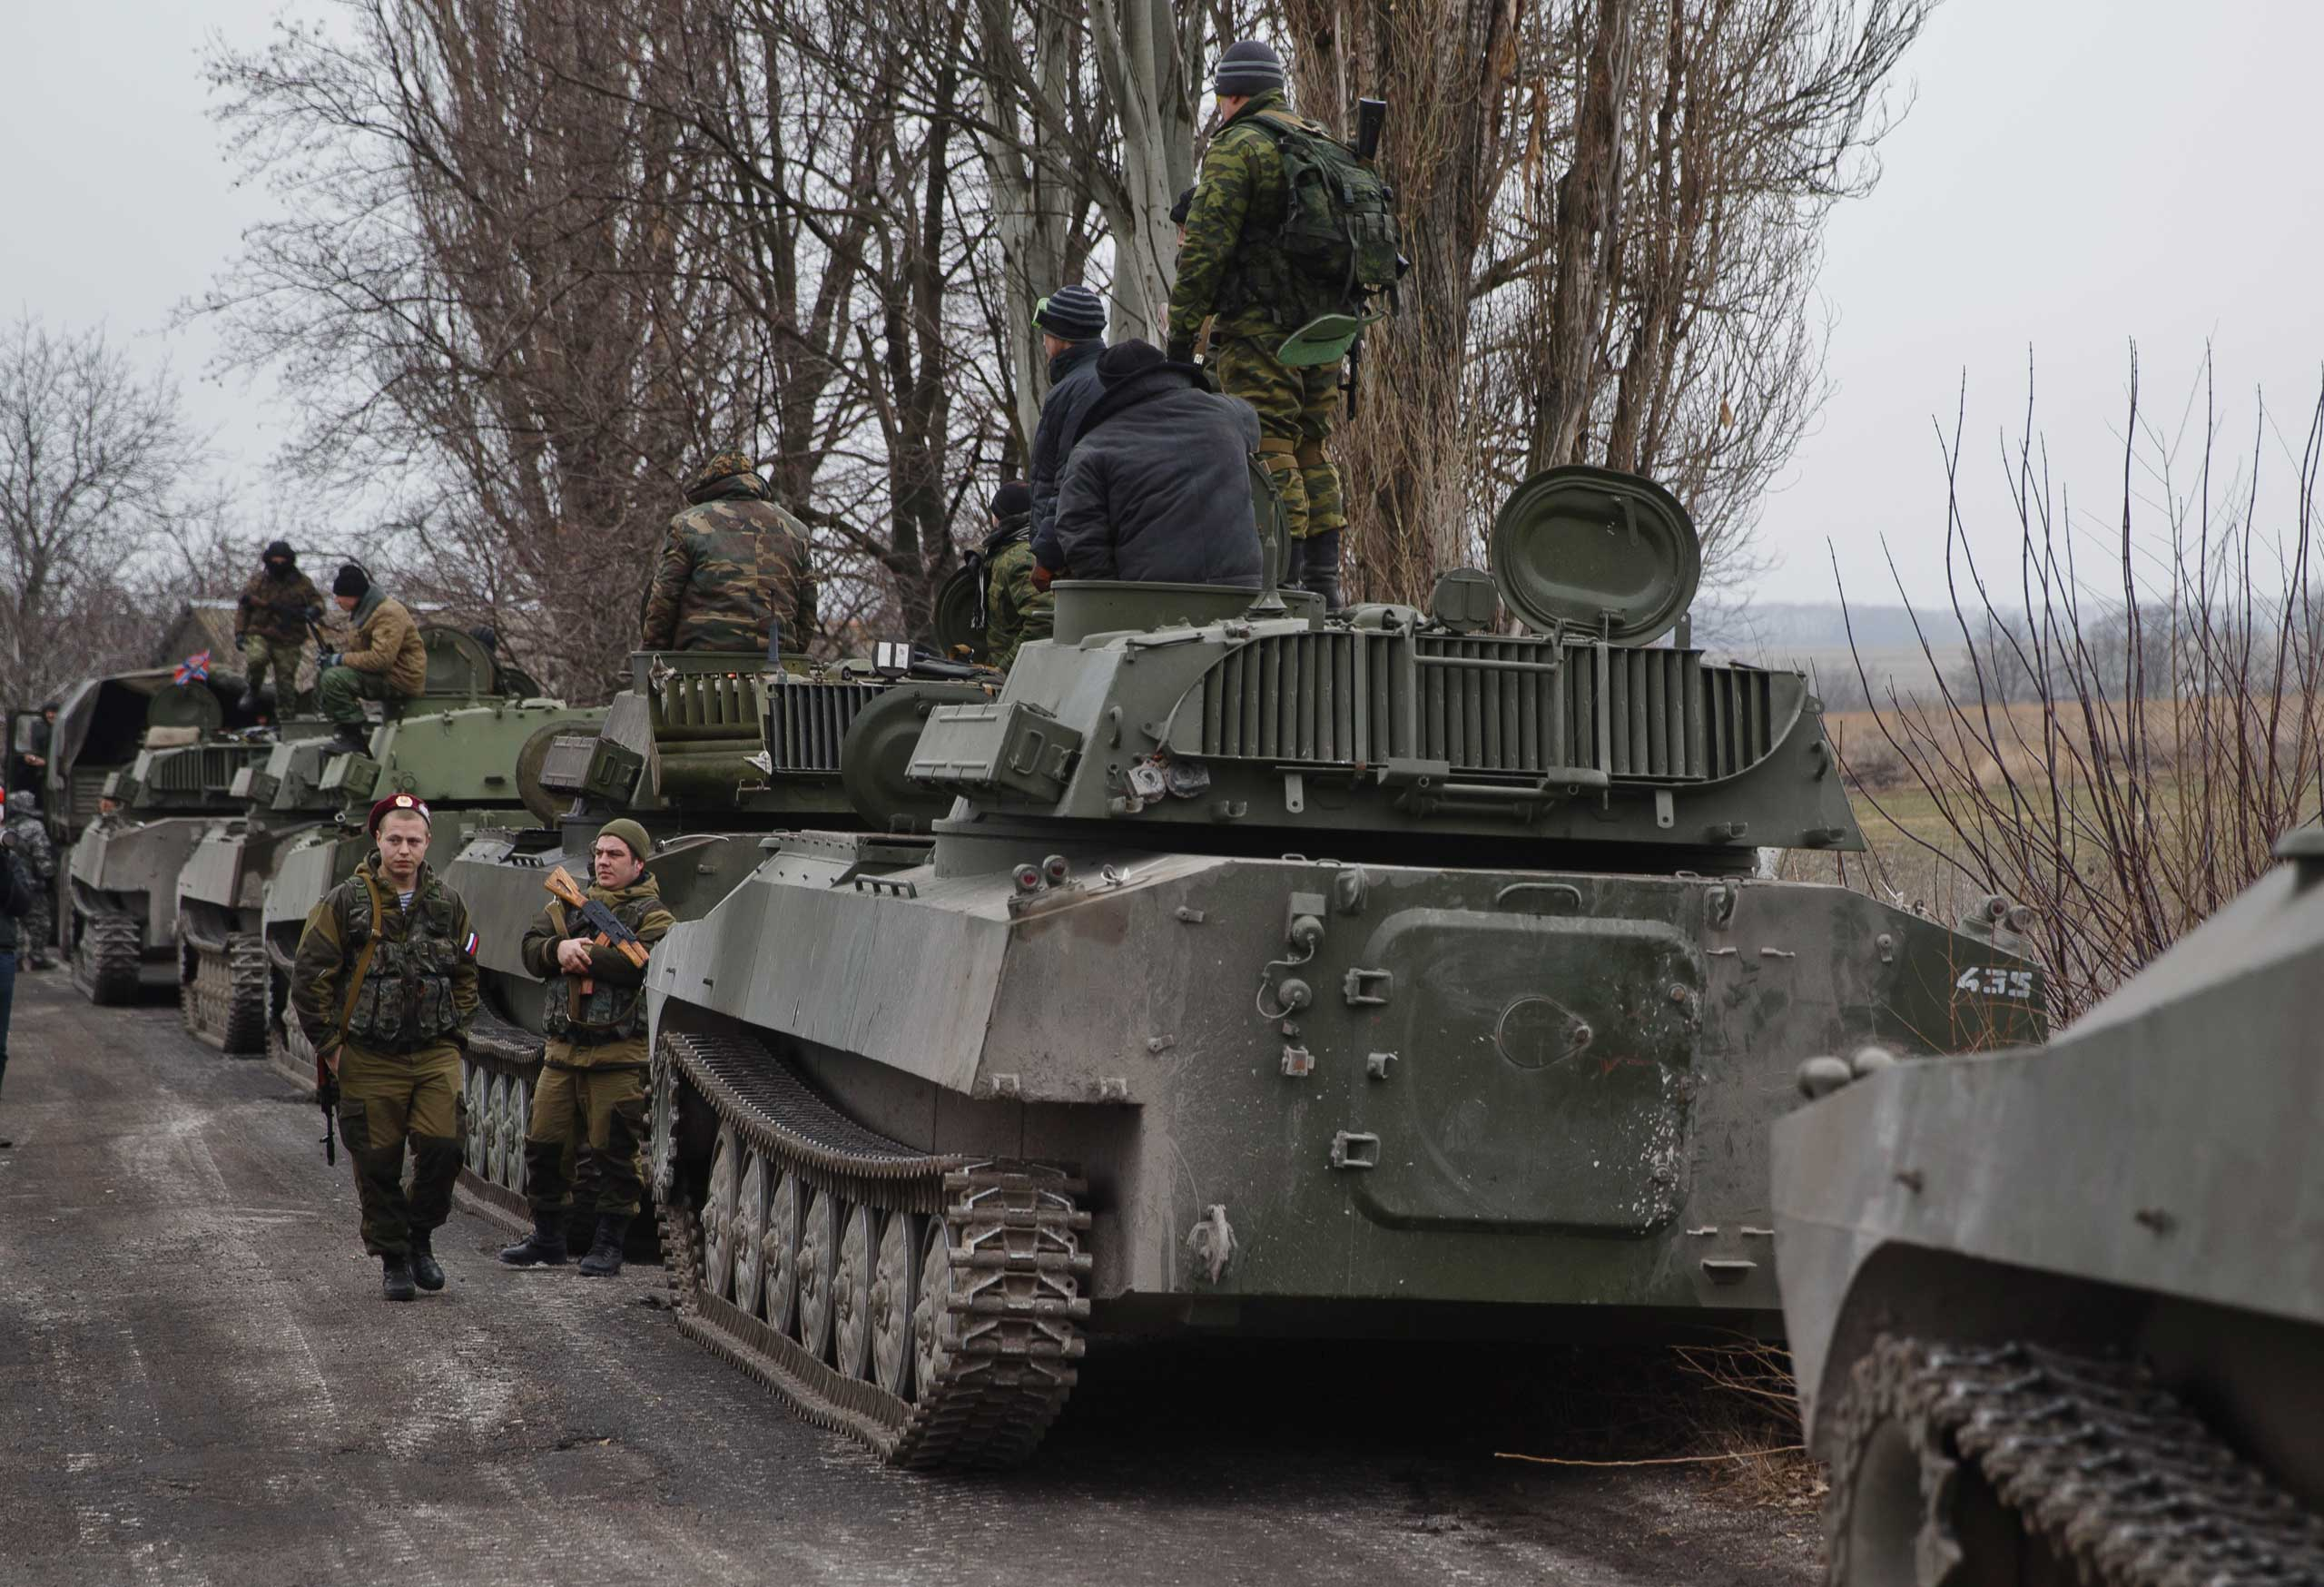 Russia-backed separatist fighters stand next to self propelled 152 mm artillery pieces, part of a unit moved away from the front lines, in Yelenovka, near Donetsk, Ukraine, Feb. 26, 2015.